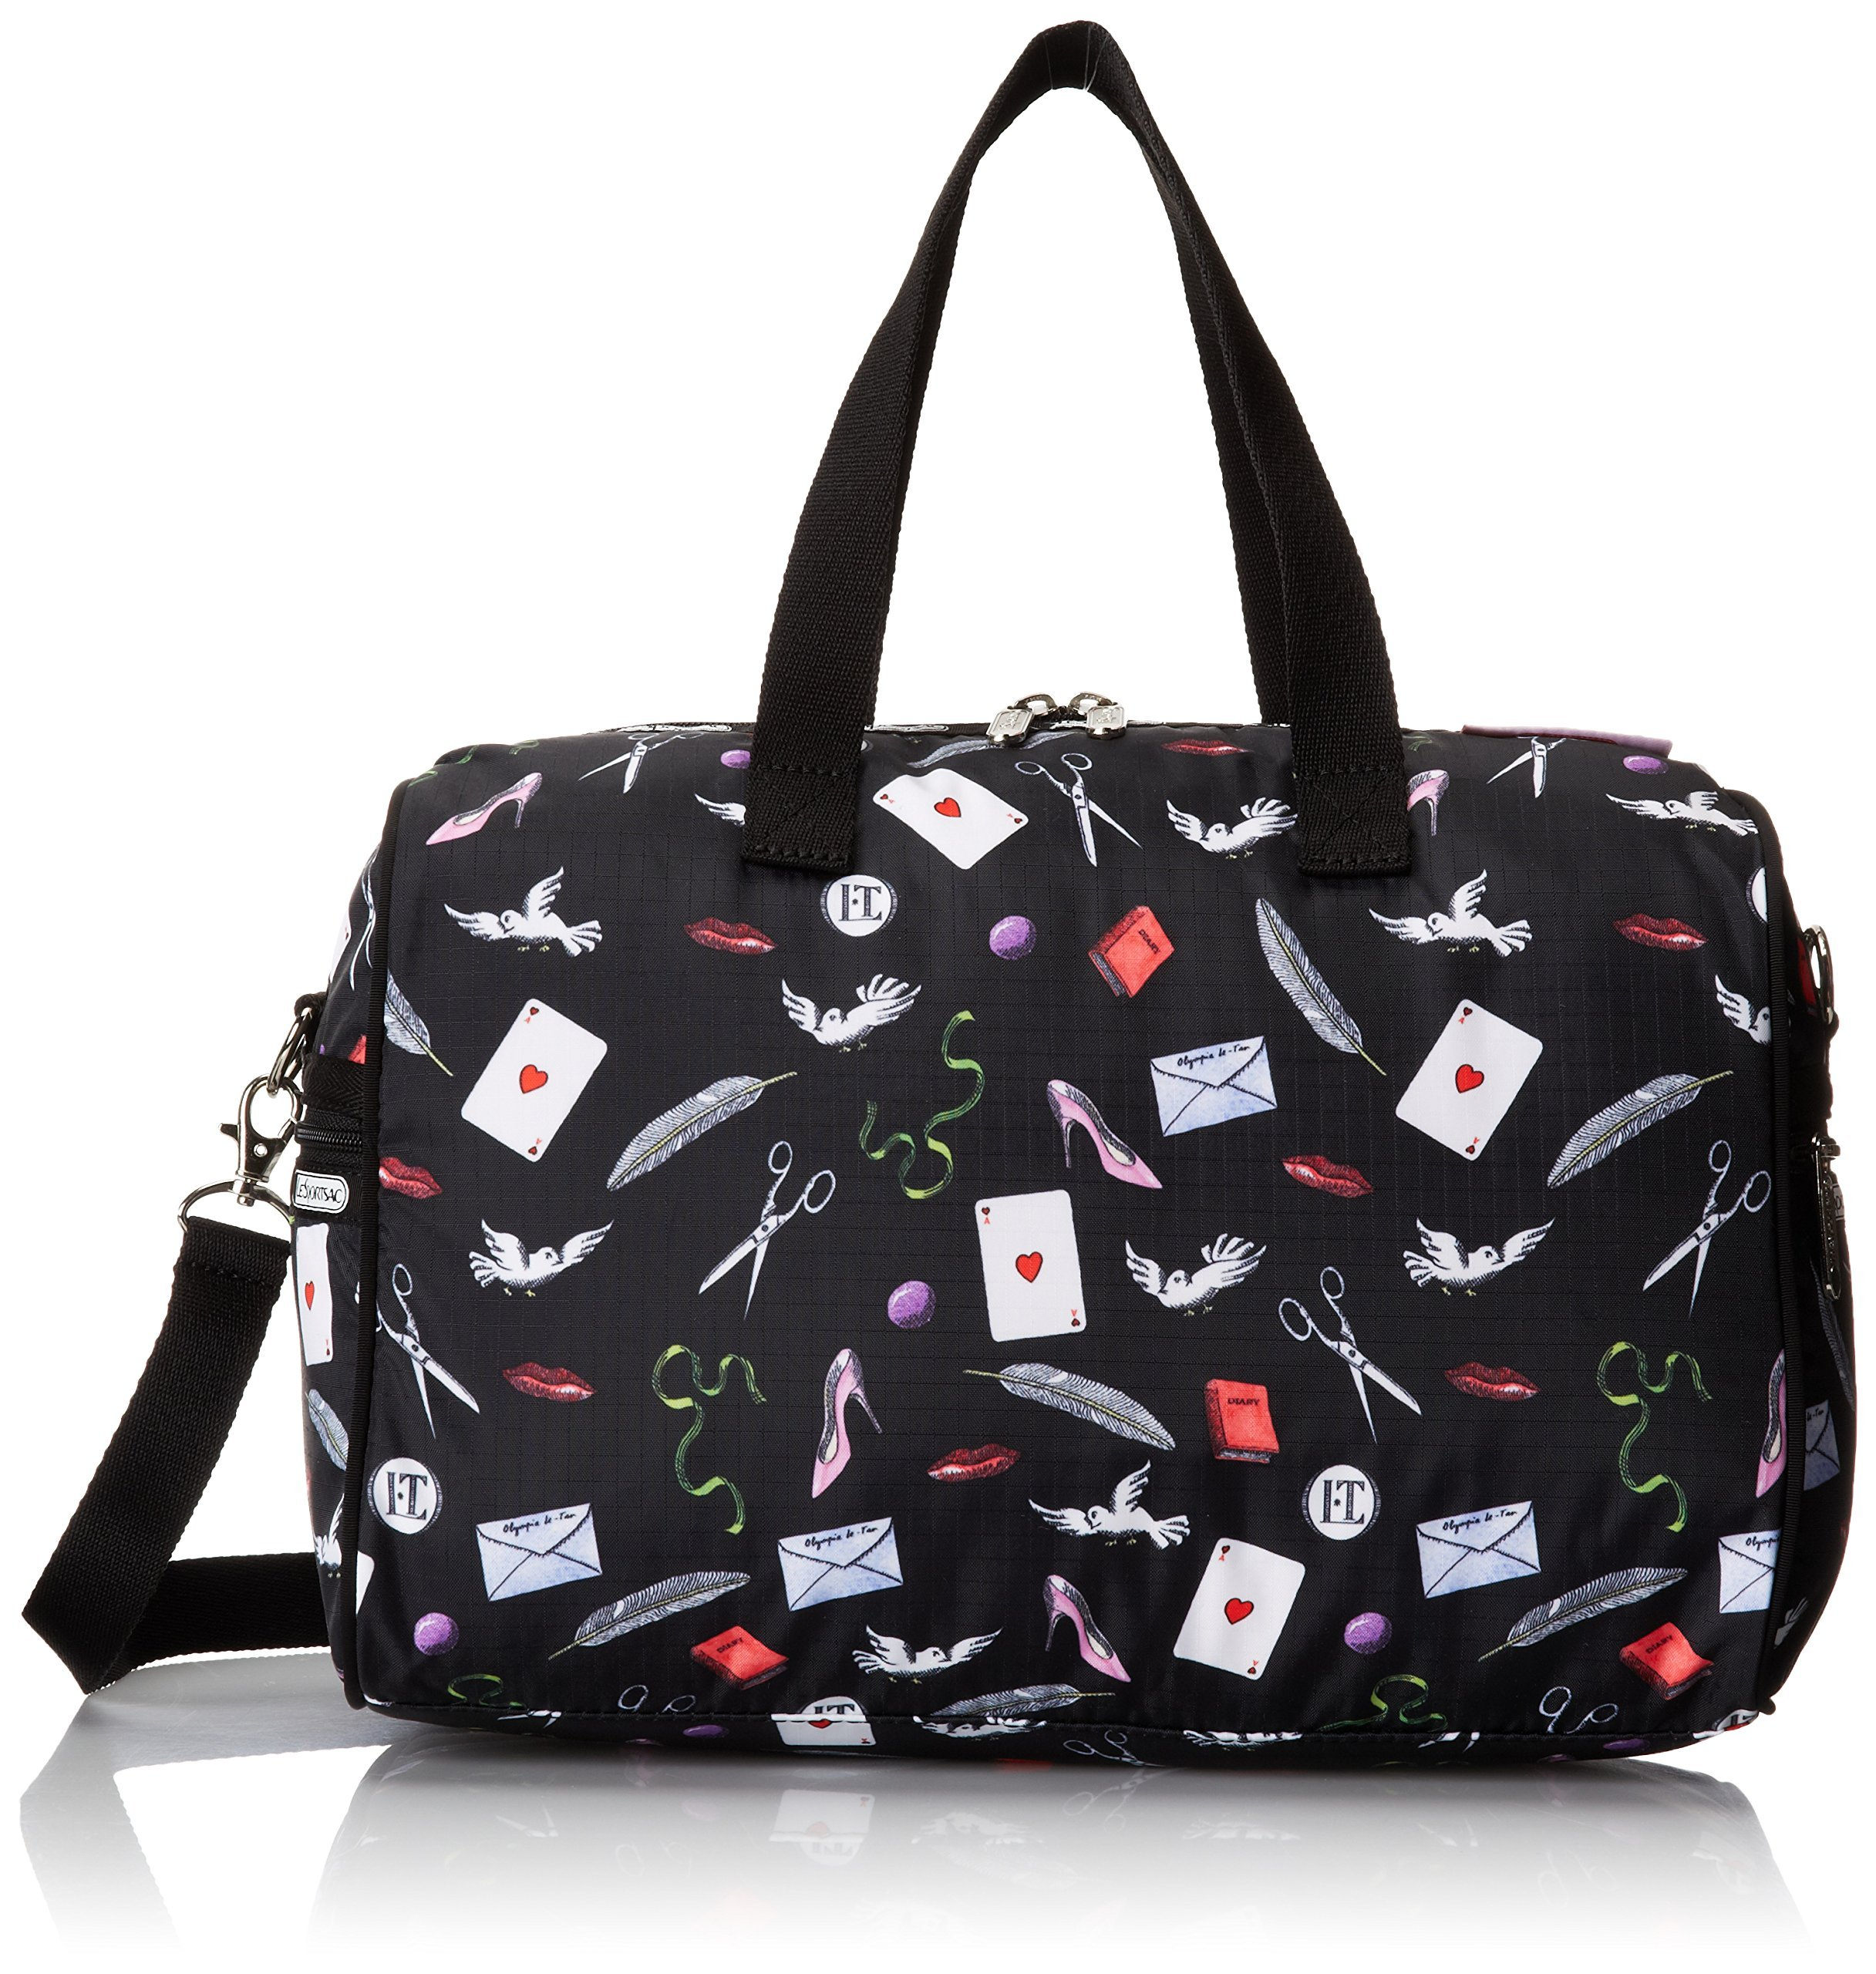 LeSportsac Melanie Shoulder Bag, Love Letters, One Size